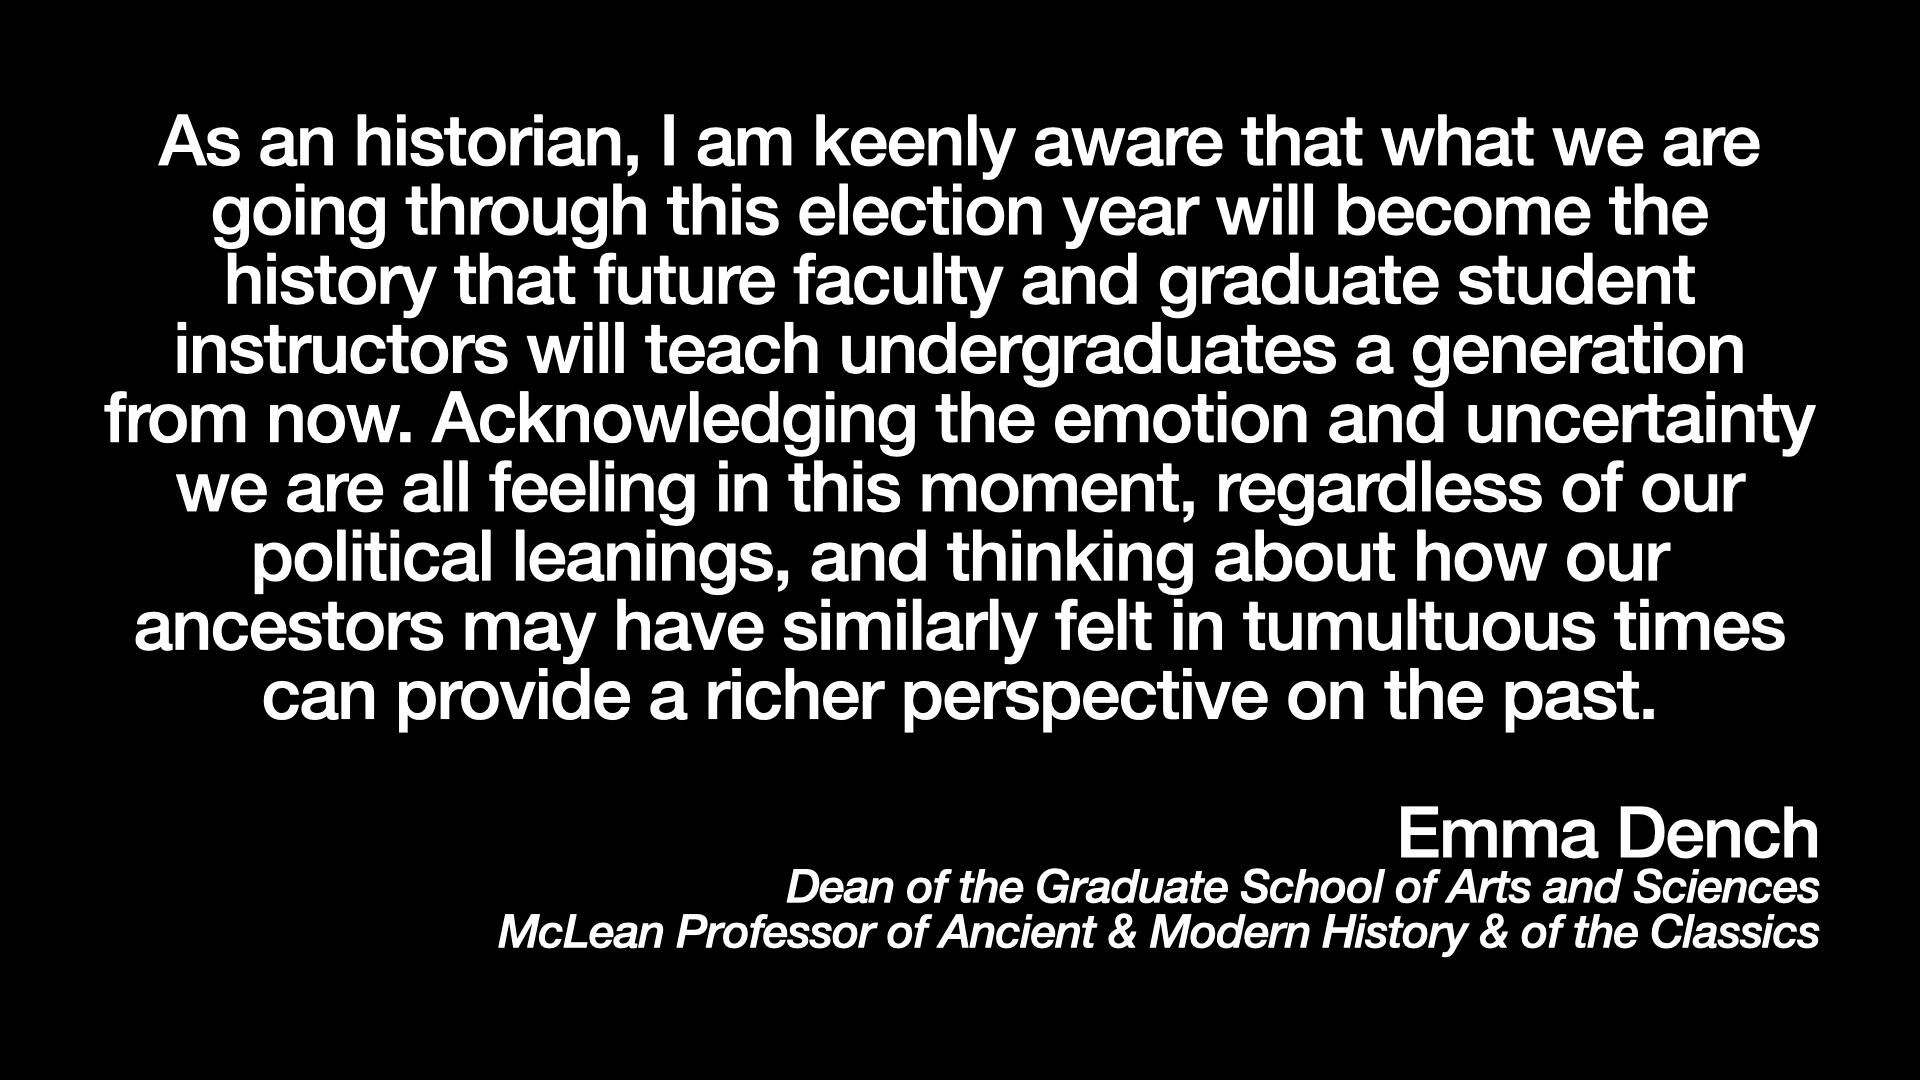 Emma Dench on Elections